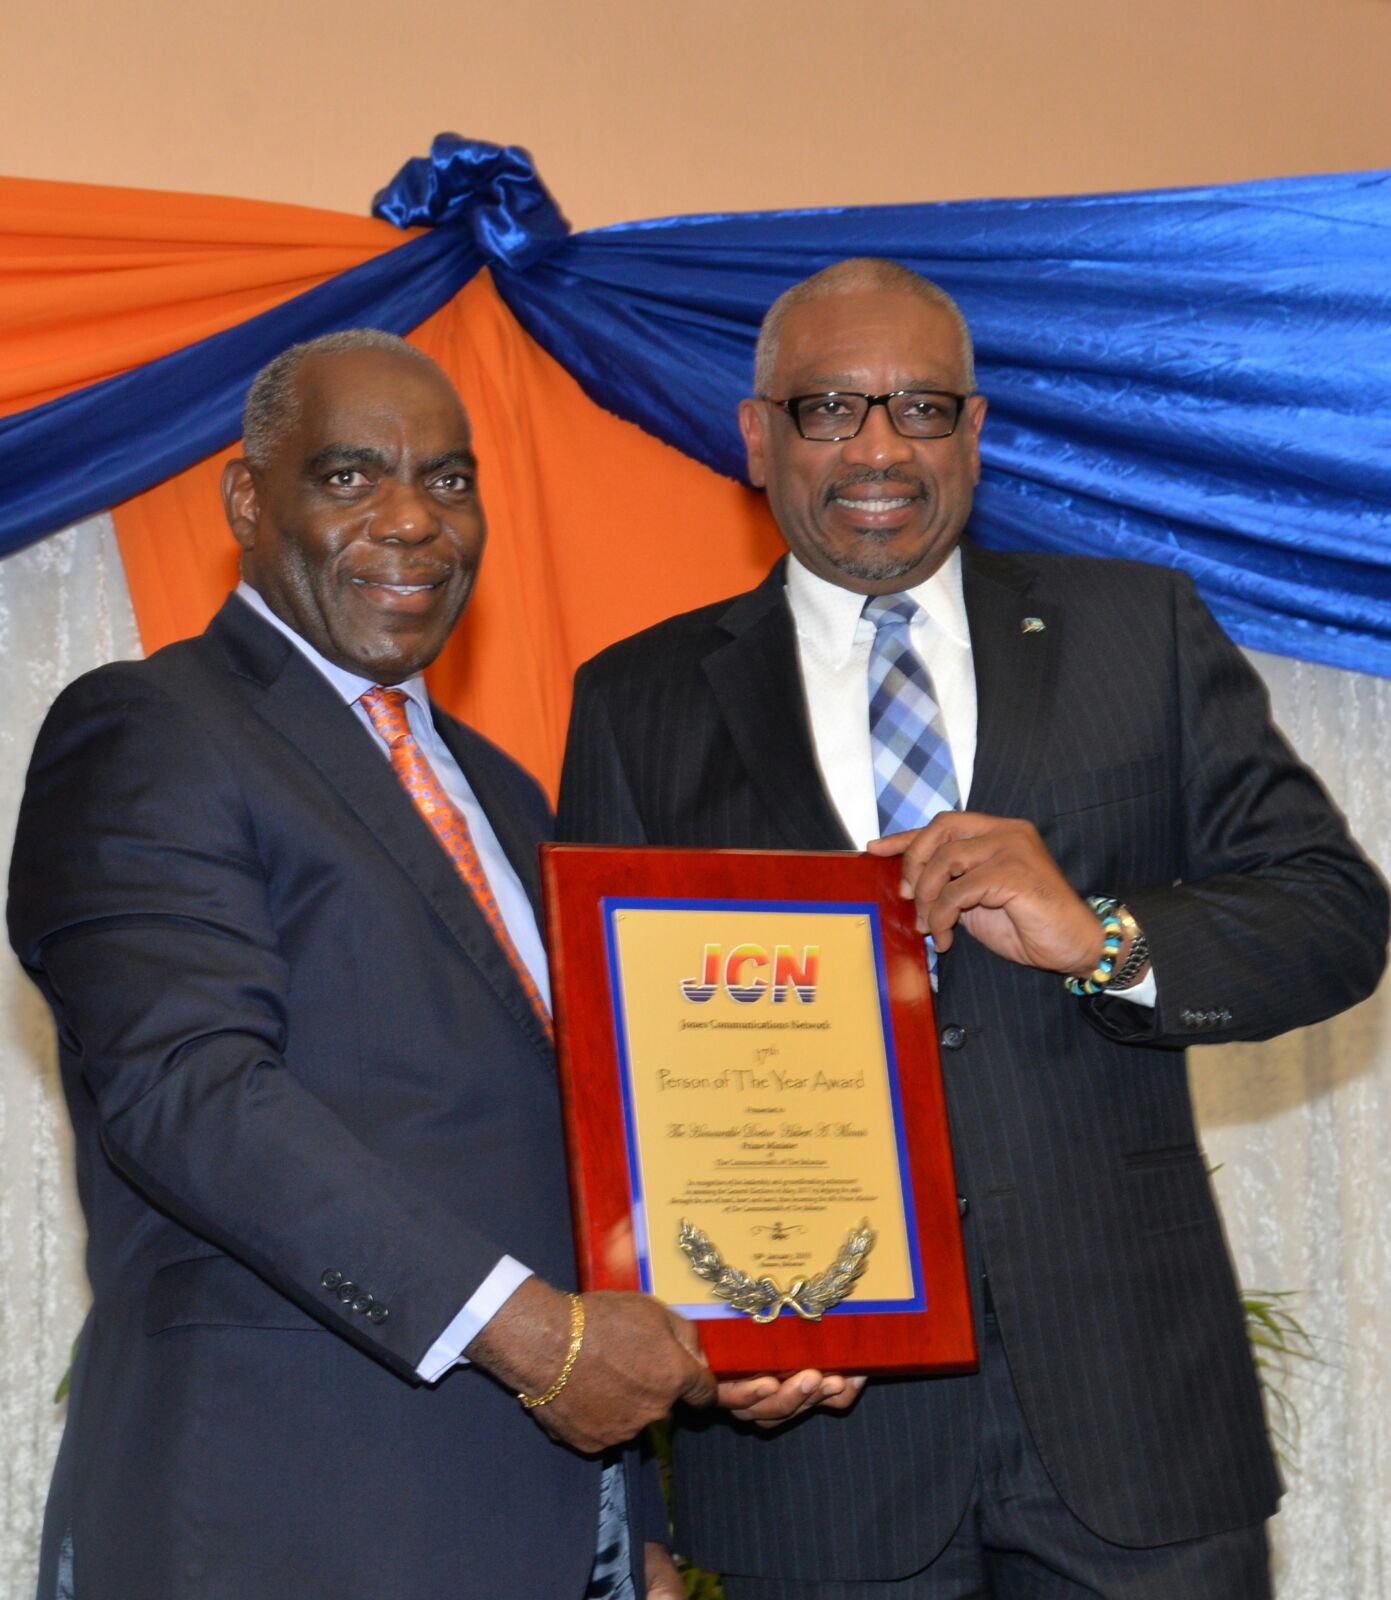 PM named 'Person of the Year' by JCN